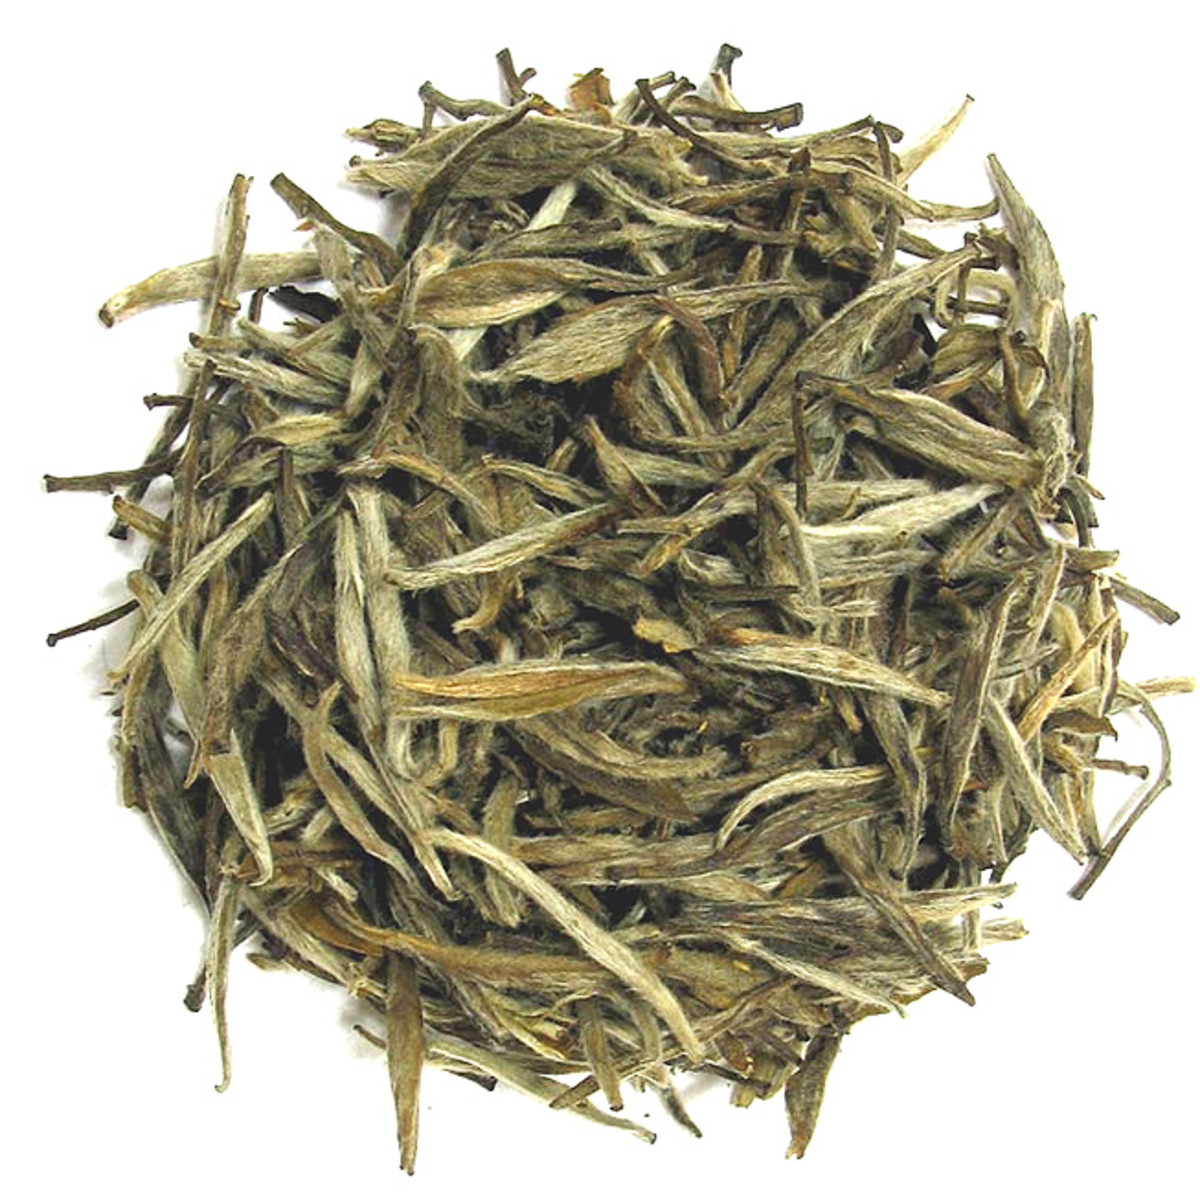 What Does White Tea Taste Like?